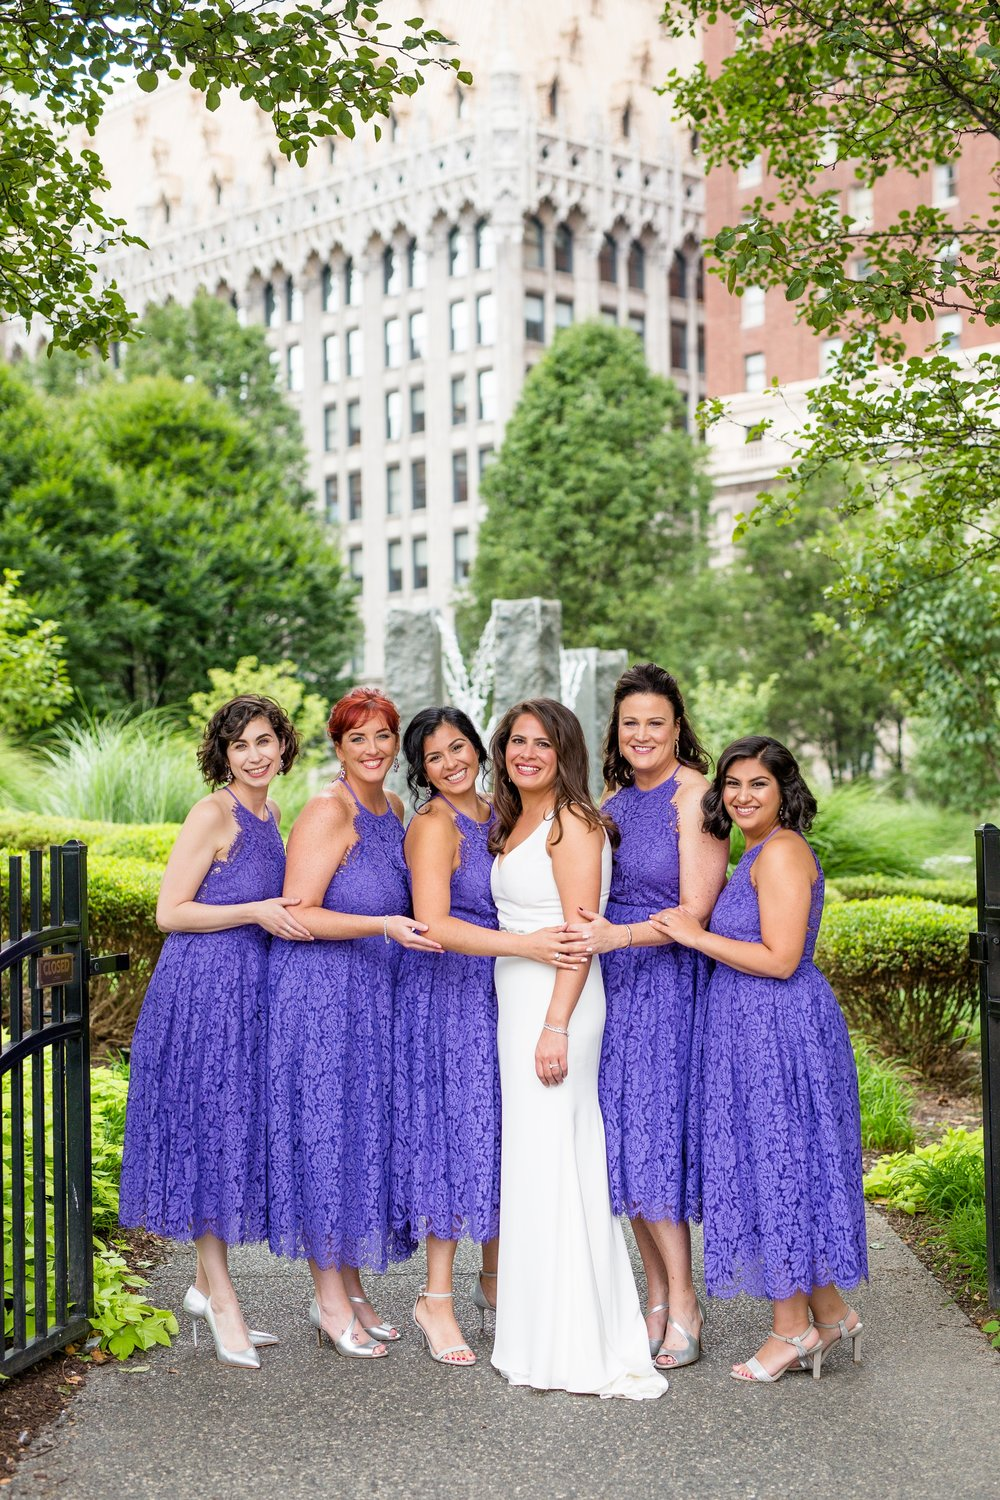 pittsburgh wedding photographer, the best pittsburgh wedding photographers, pittsburgh wedding venues, the pennsylvanian wedding photos